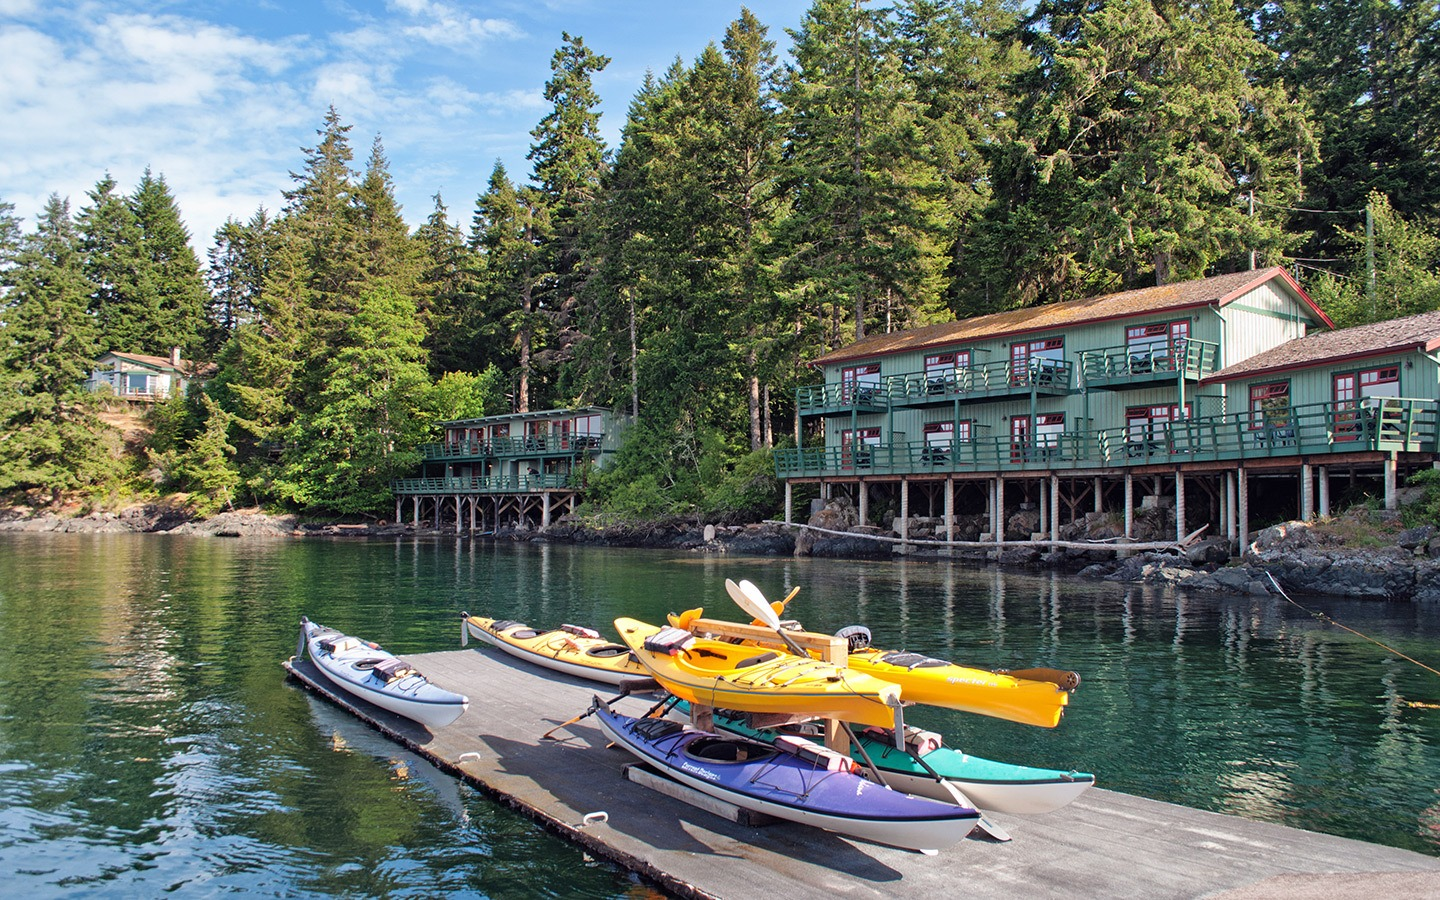 April Point Resort on Quadra Island